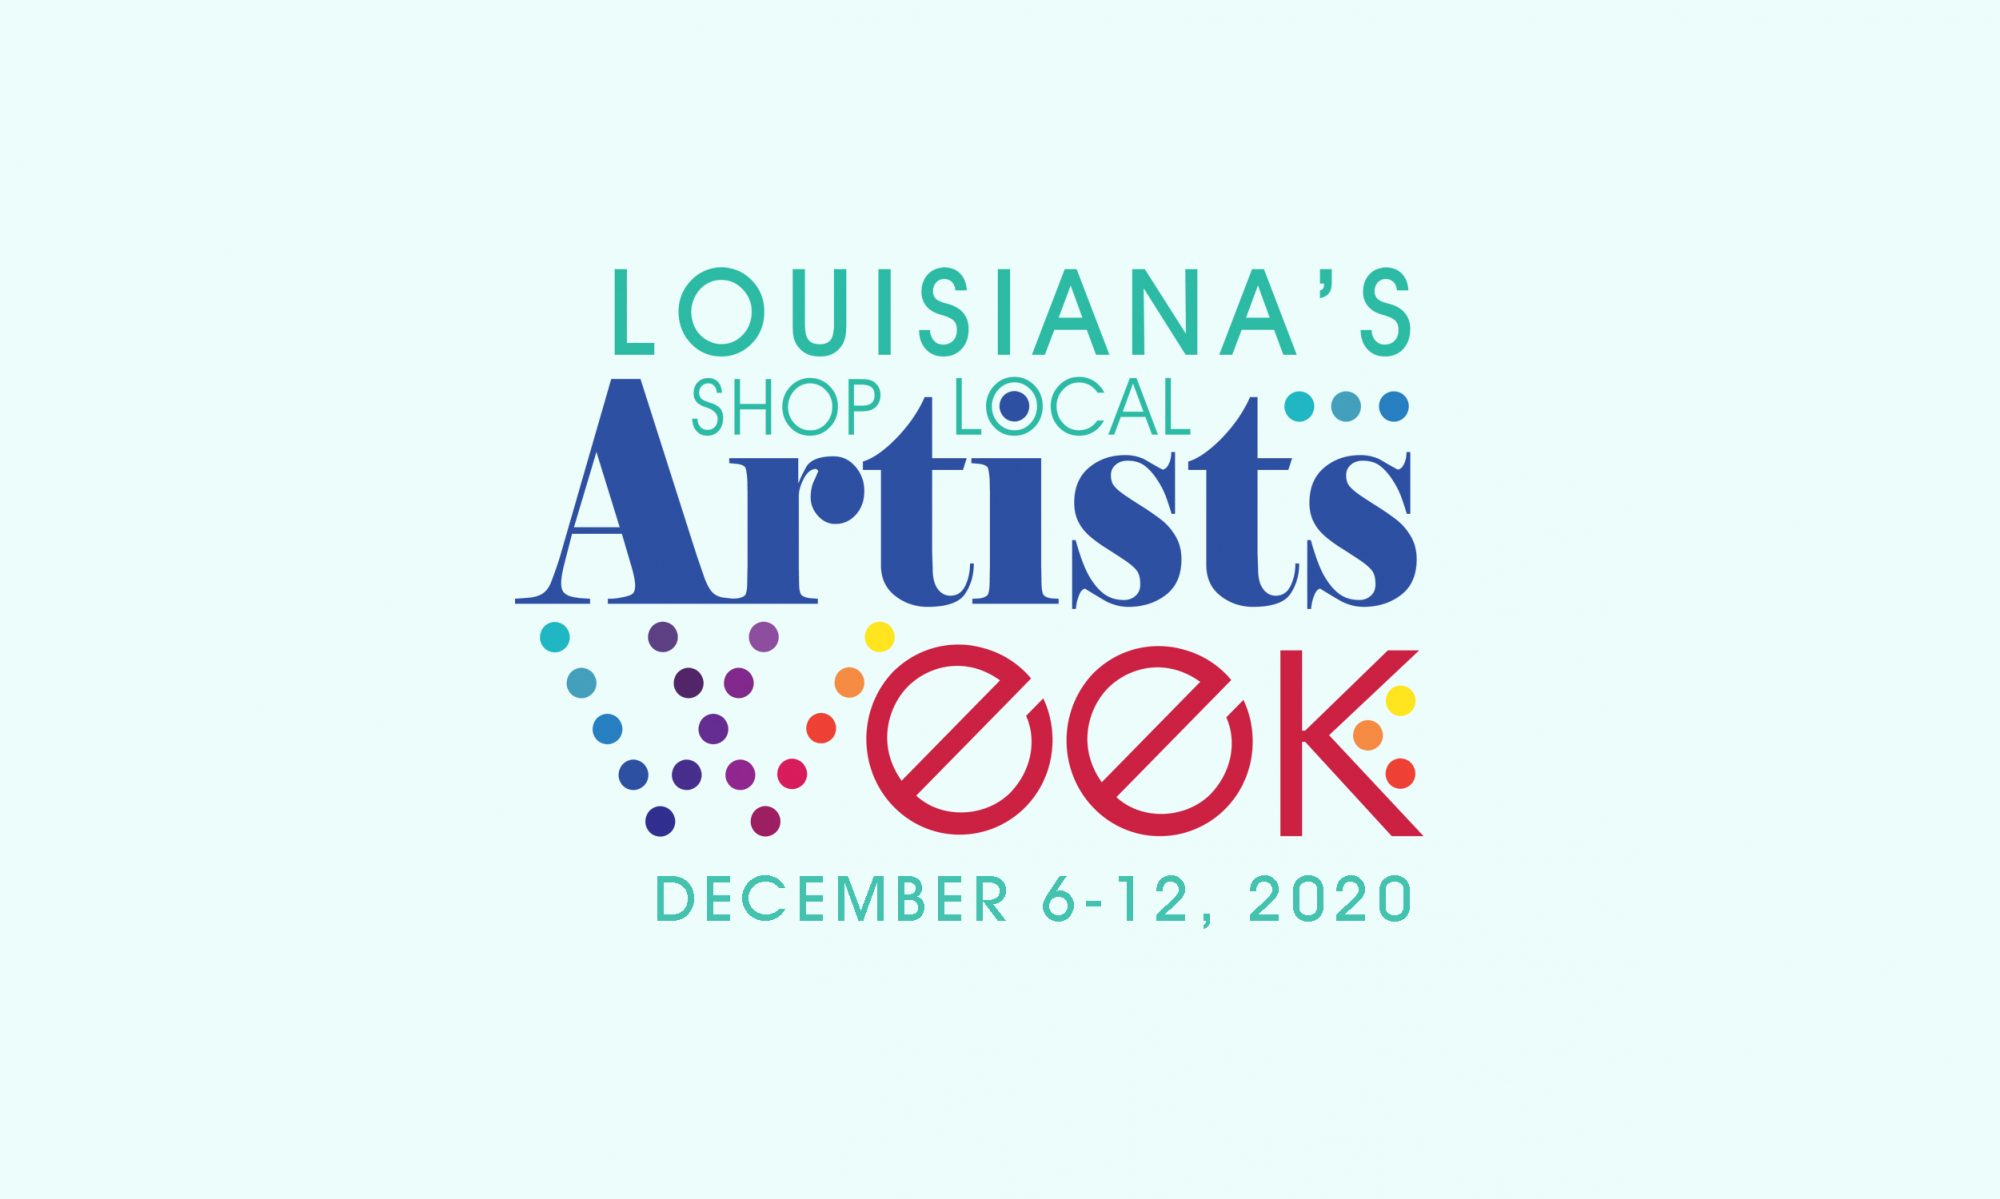 Shop Local Artists Week